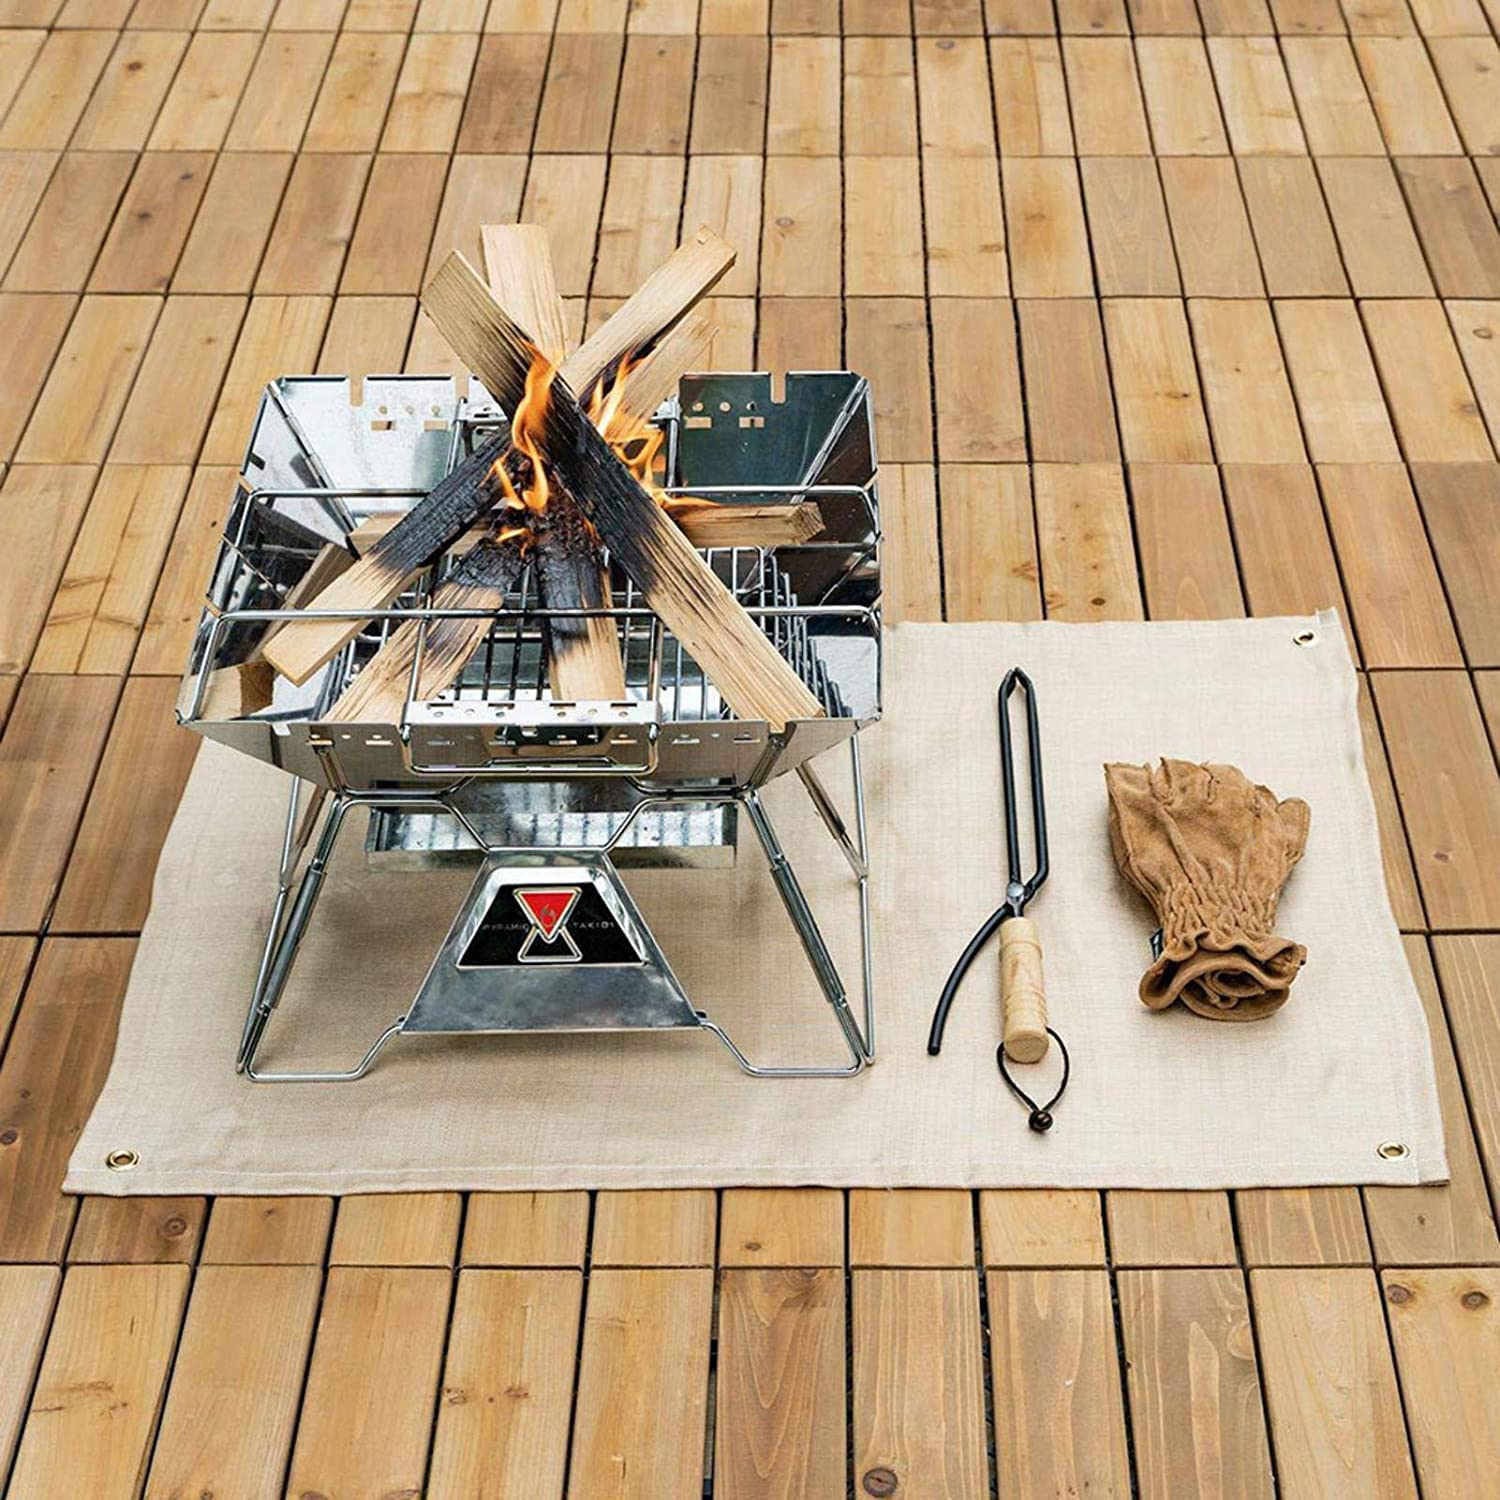 Fireproof Mat for Fire Pit for Wood Burner Gas Grill Mat Picnic Barbecue Heat Insulation Pad Camping Fireproof Blanket Flame Retardant Stove Floor Mat